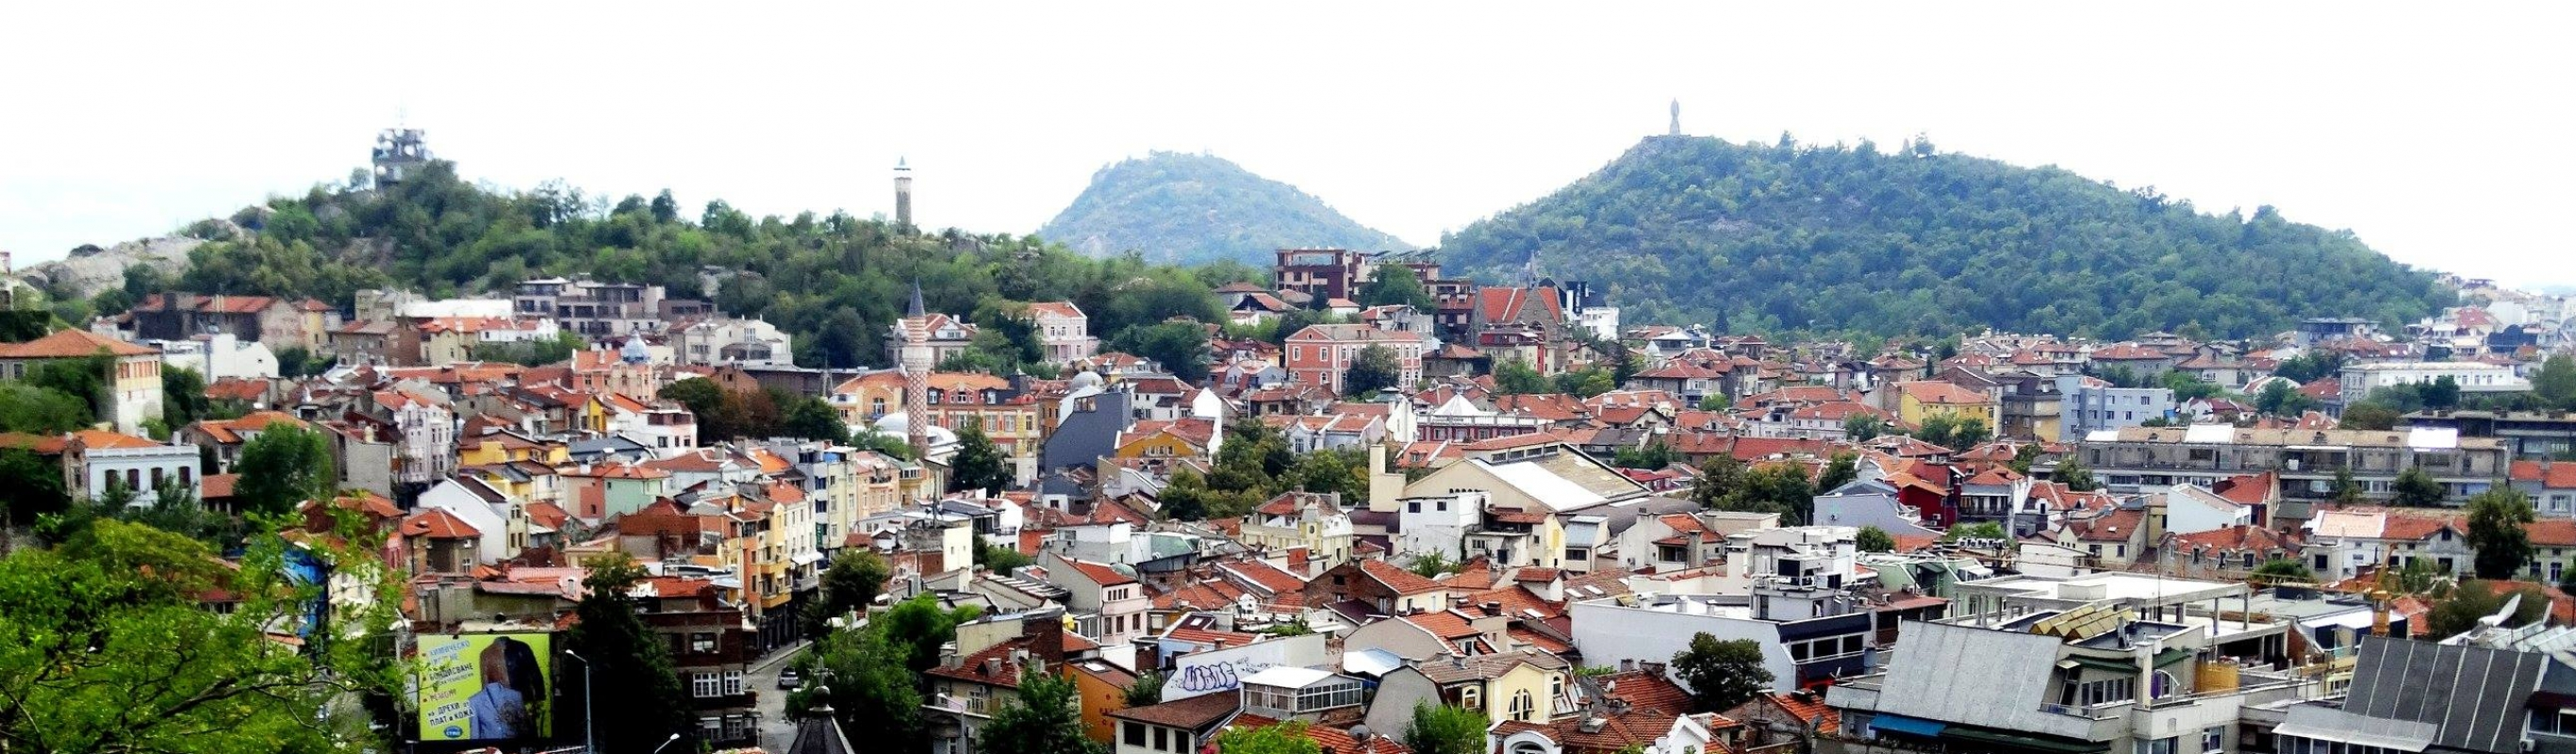 The hills of Plovdiv